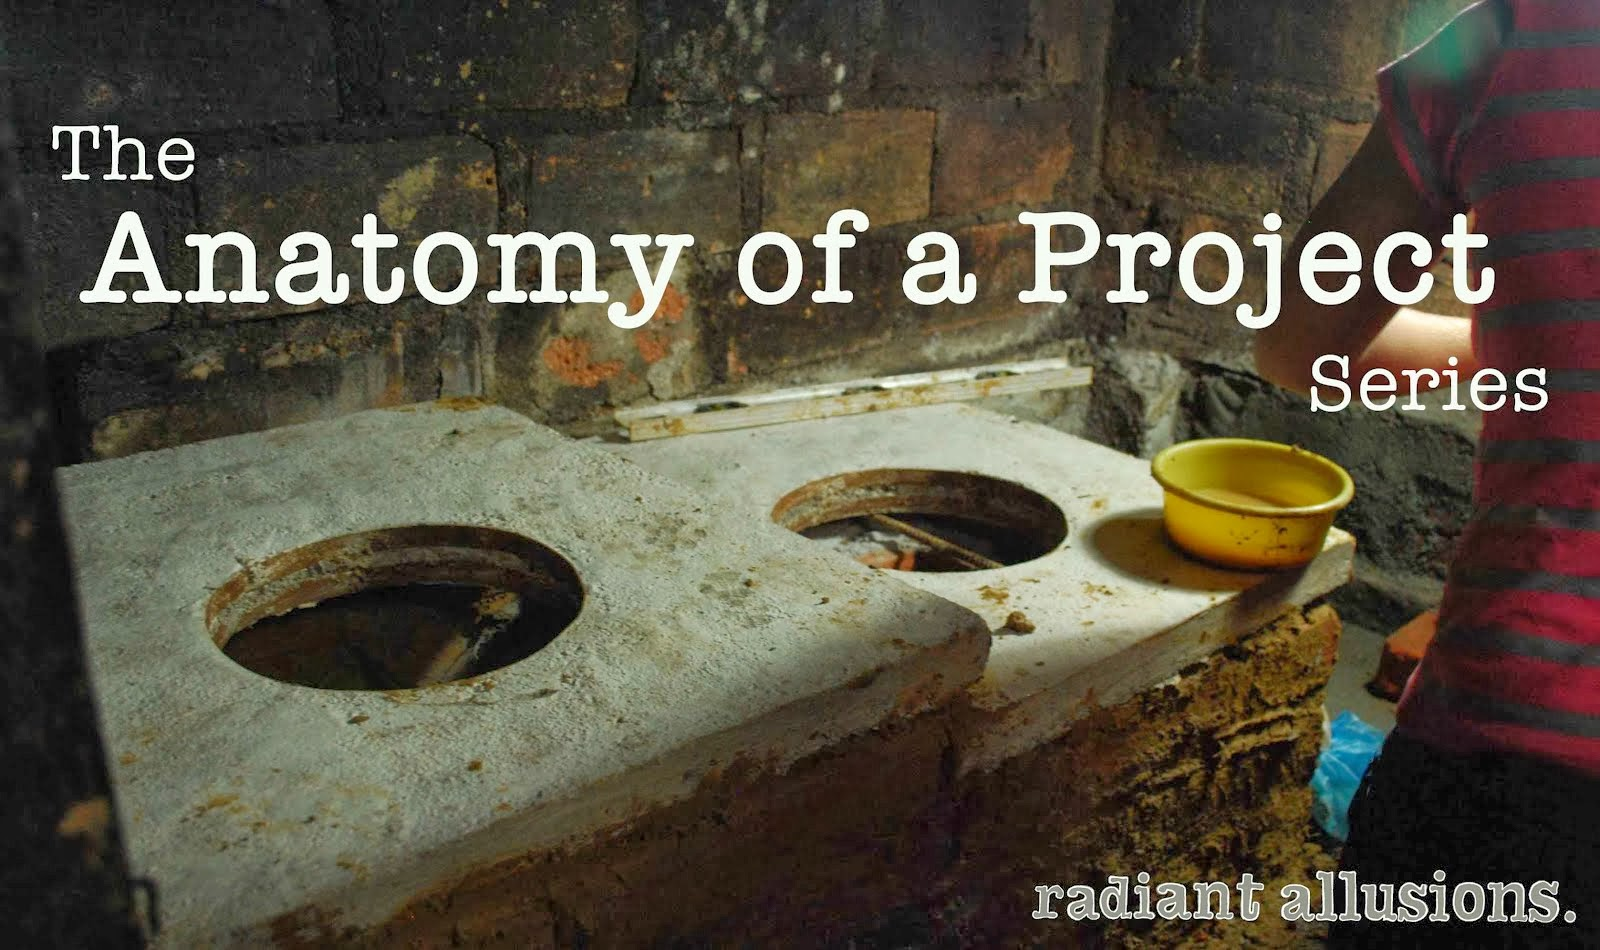 The Anatomy of a Project